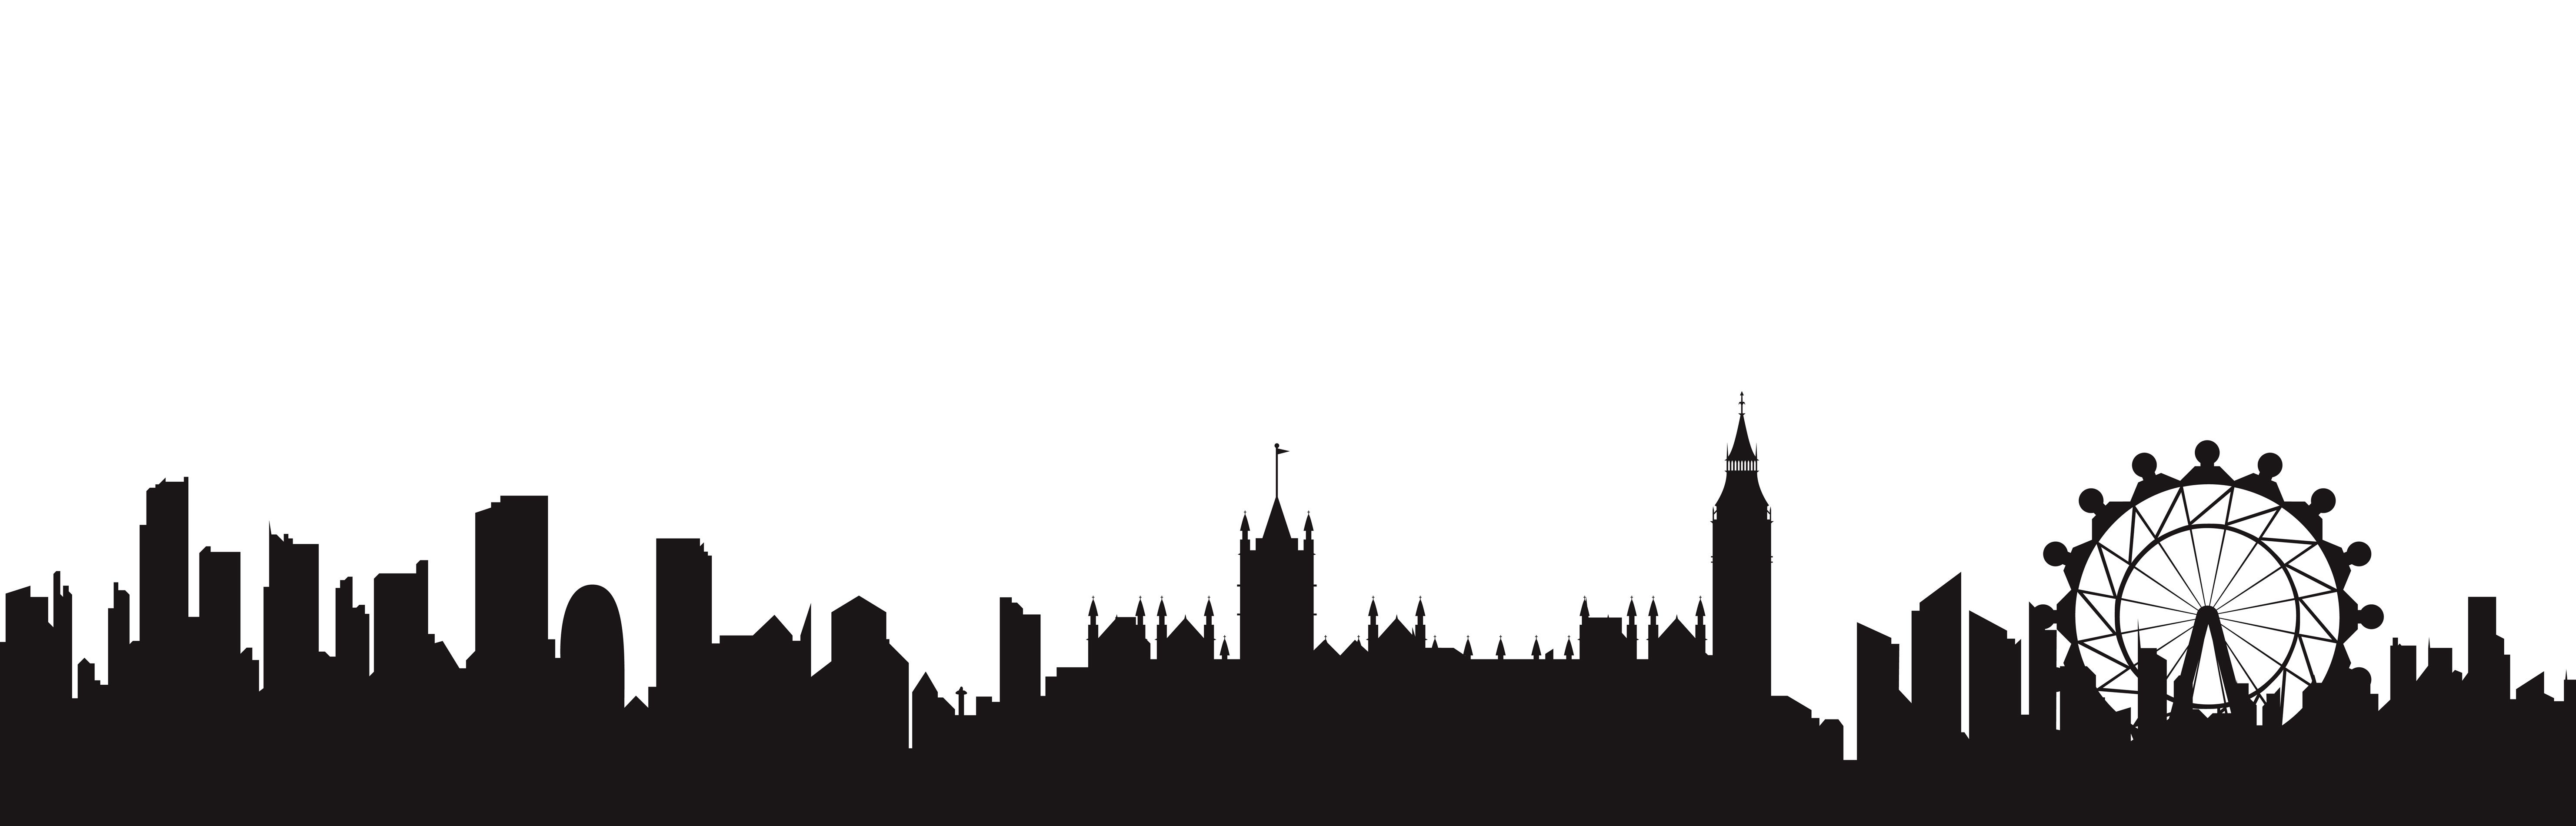 london-skyline-at-night-black-and-white-shout-it-from-the ... | 5925 x 1900 jpeg 178kB